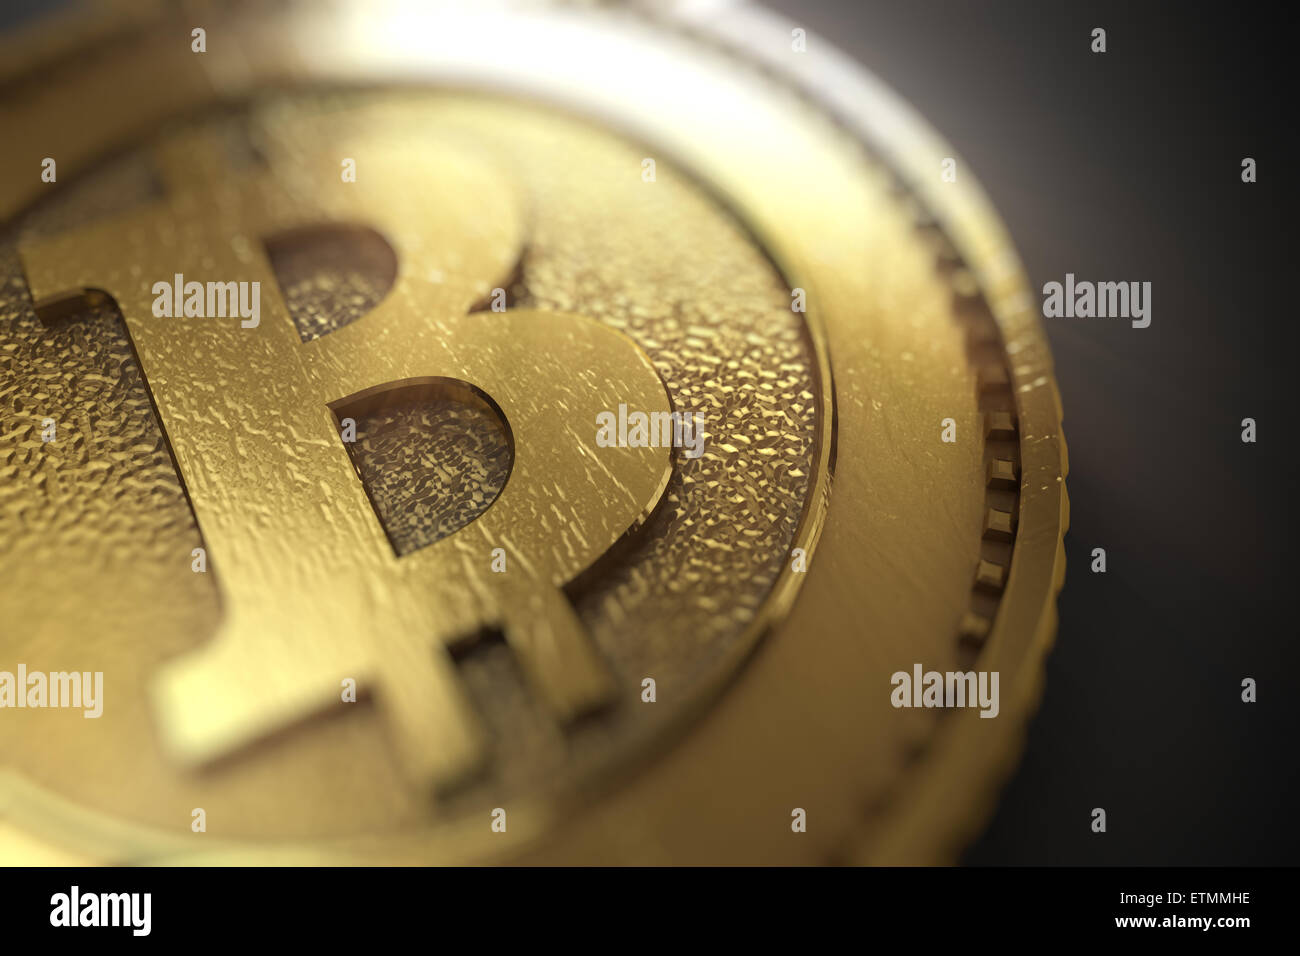 Stylized representation of Bitcoin, a digital currency. - Stock Image